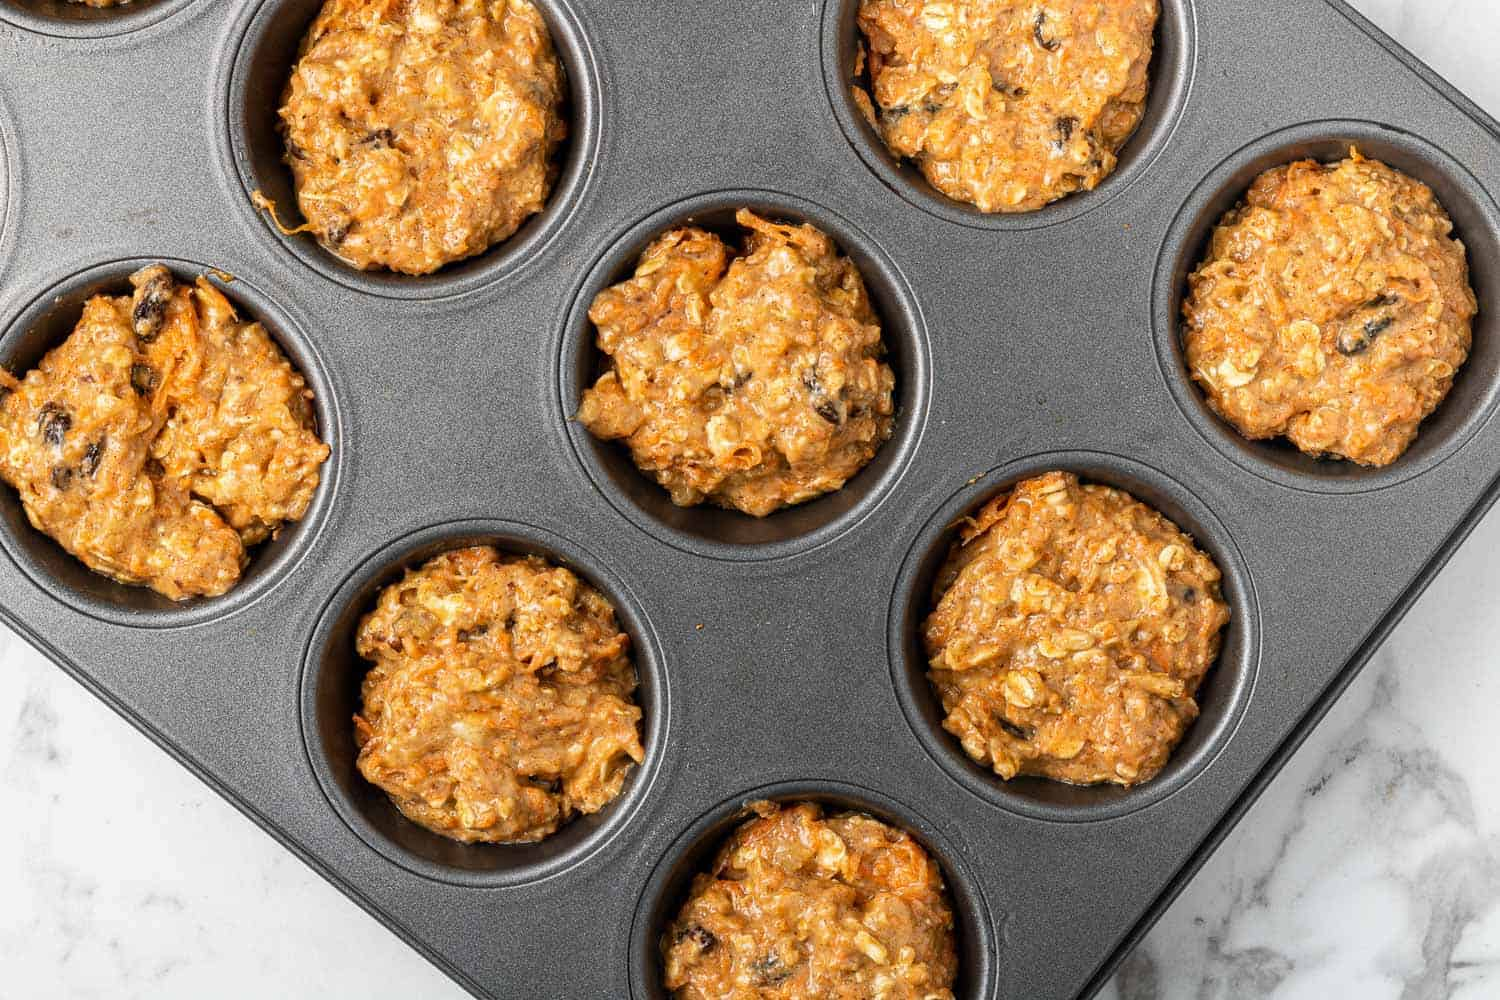 Unbaked muffins in a muffin tin.